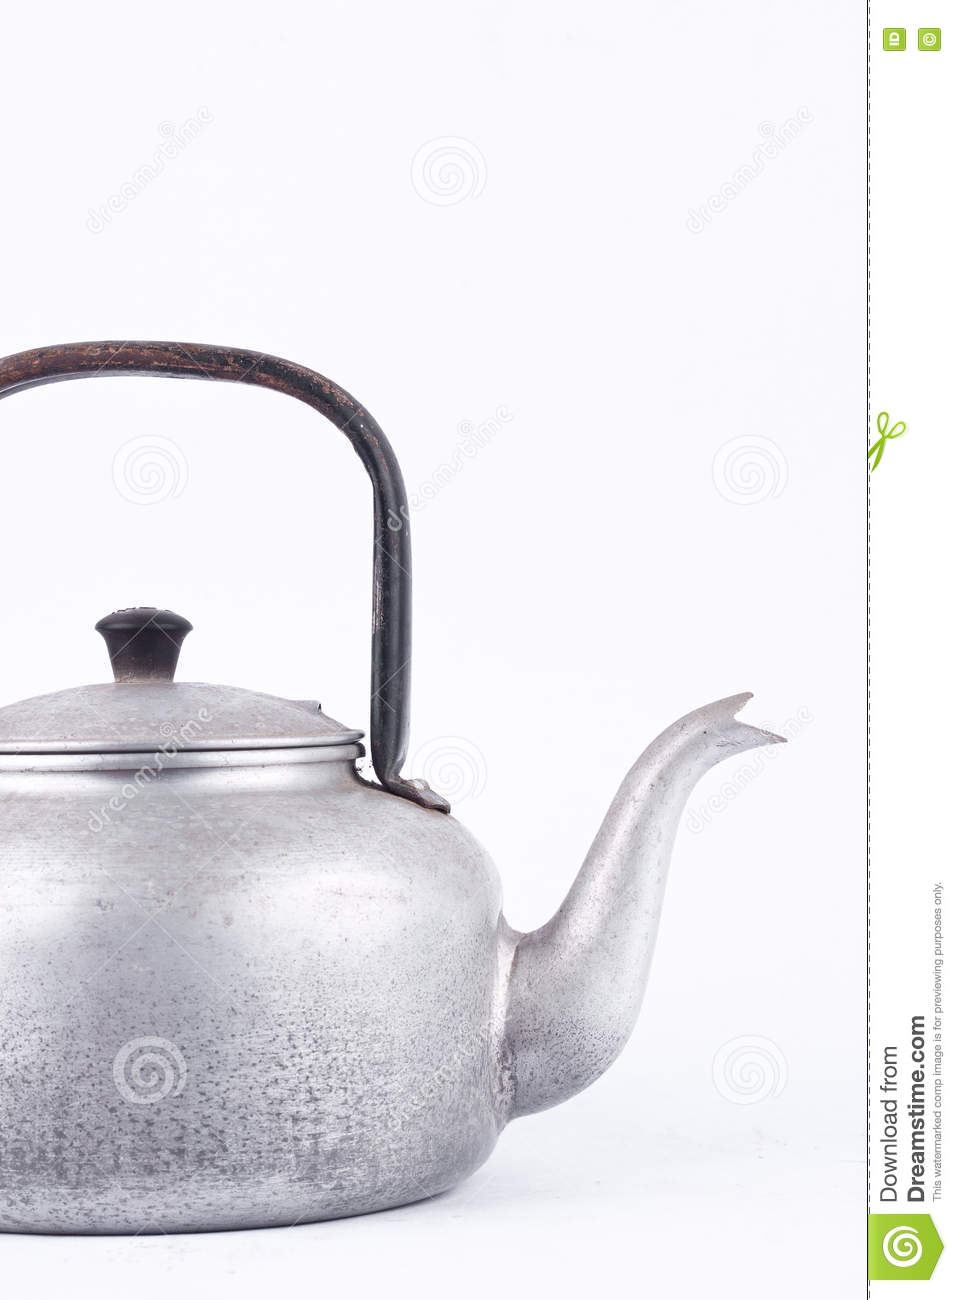 Old vintage retro Kettle on white background drink isolated close up. Which, kettle made of aluminum materials.